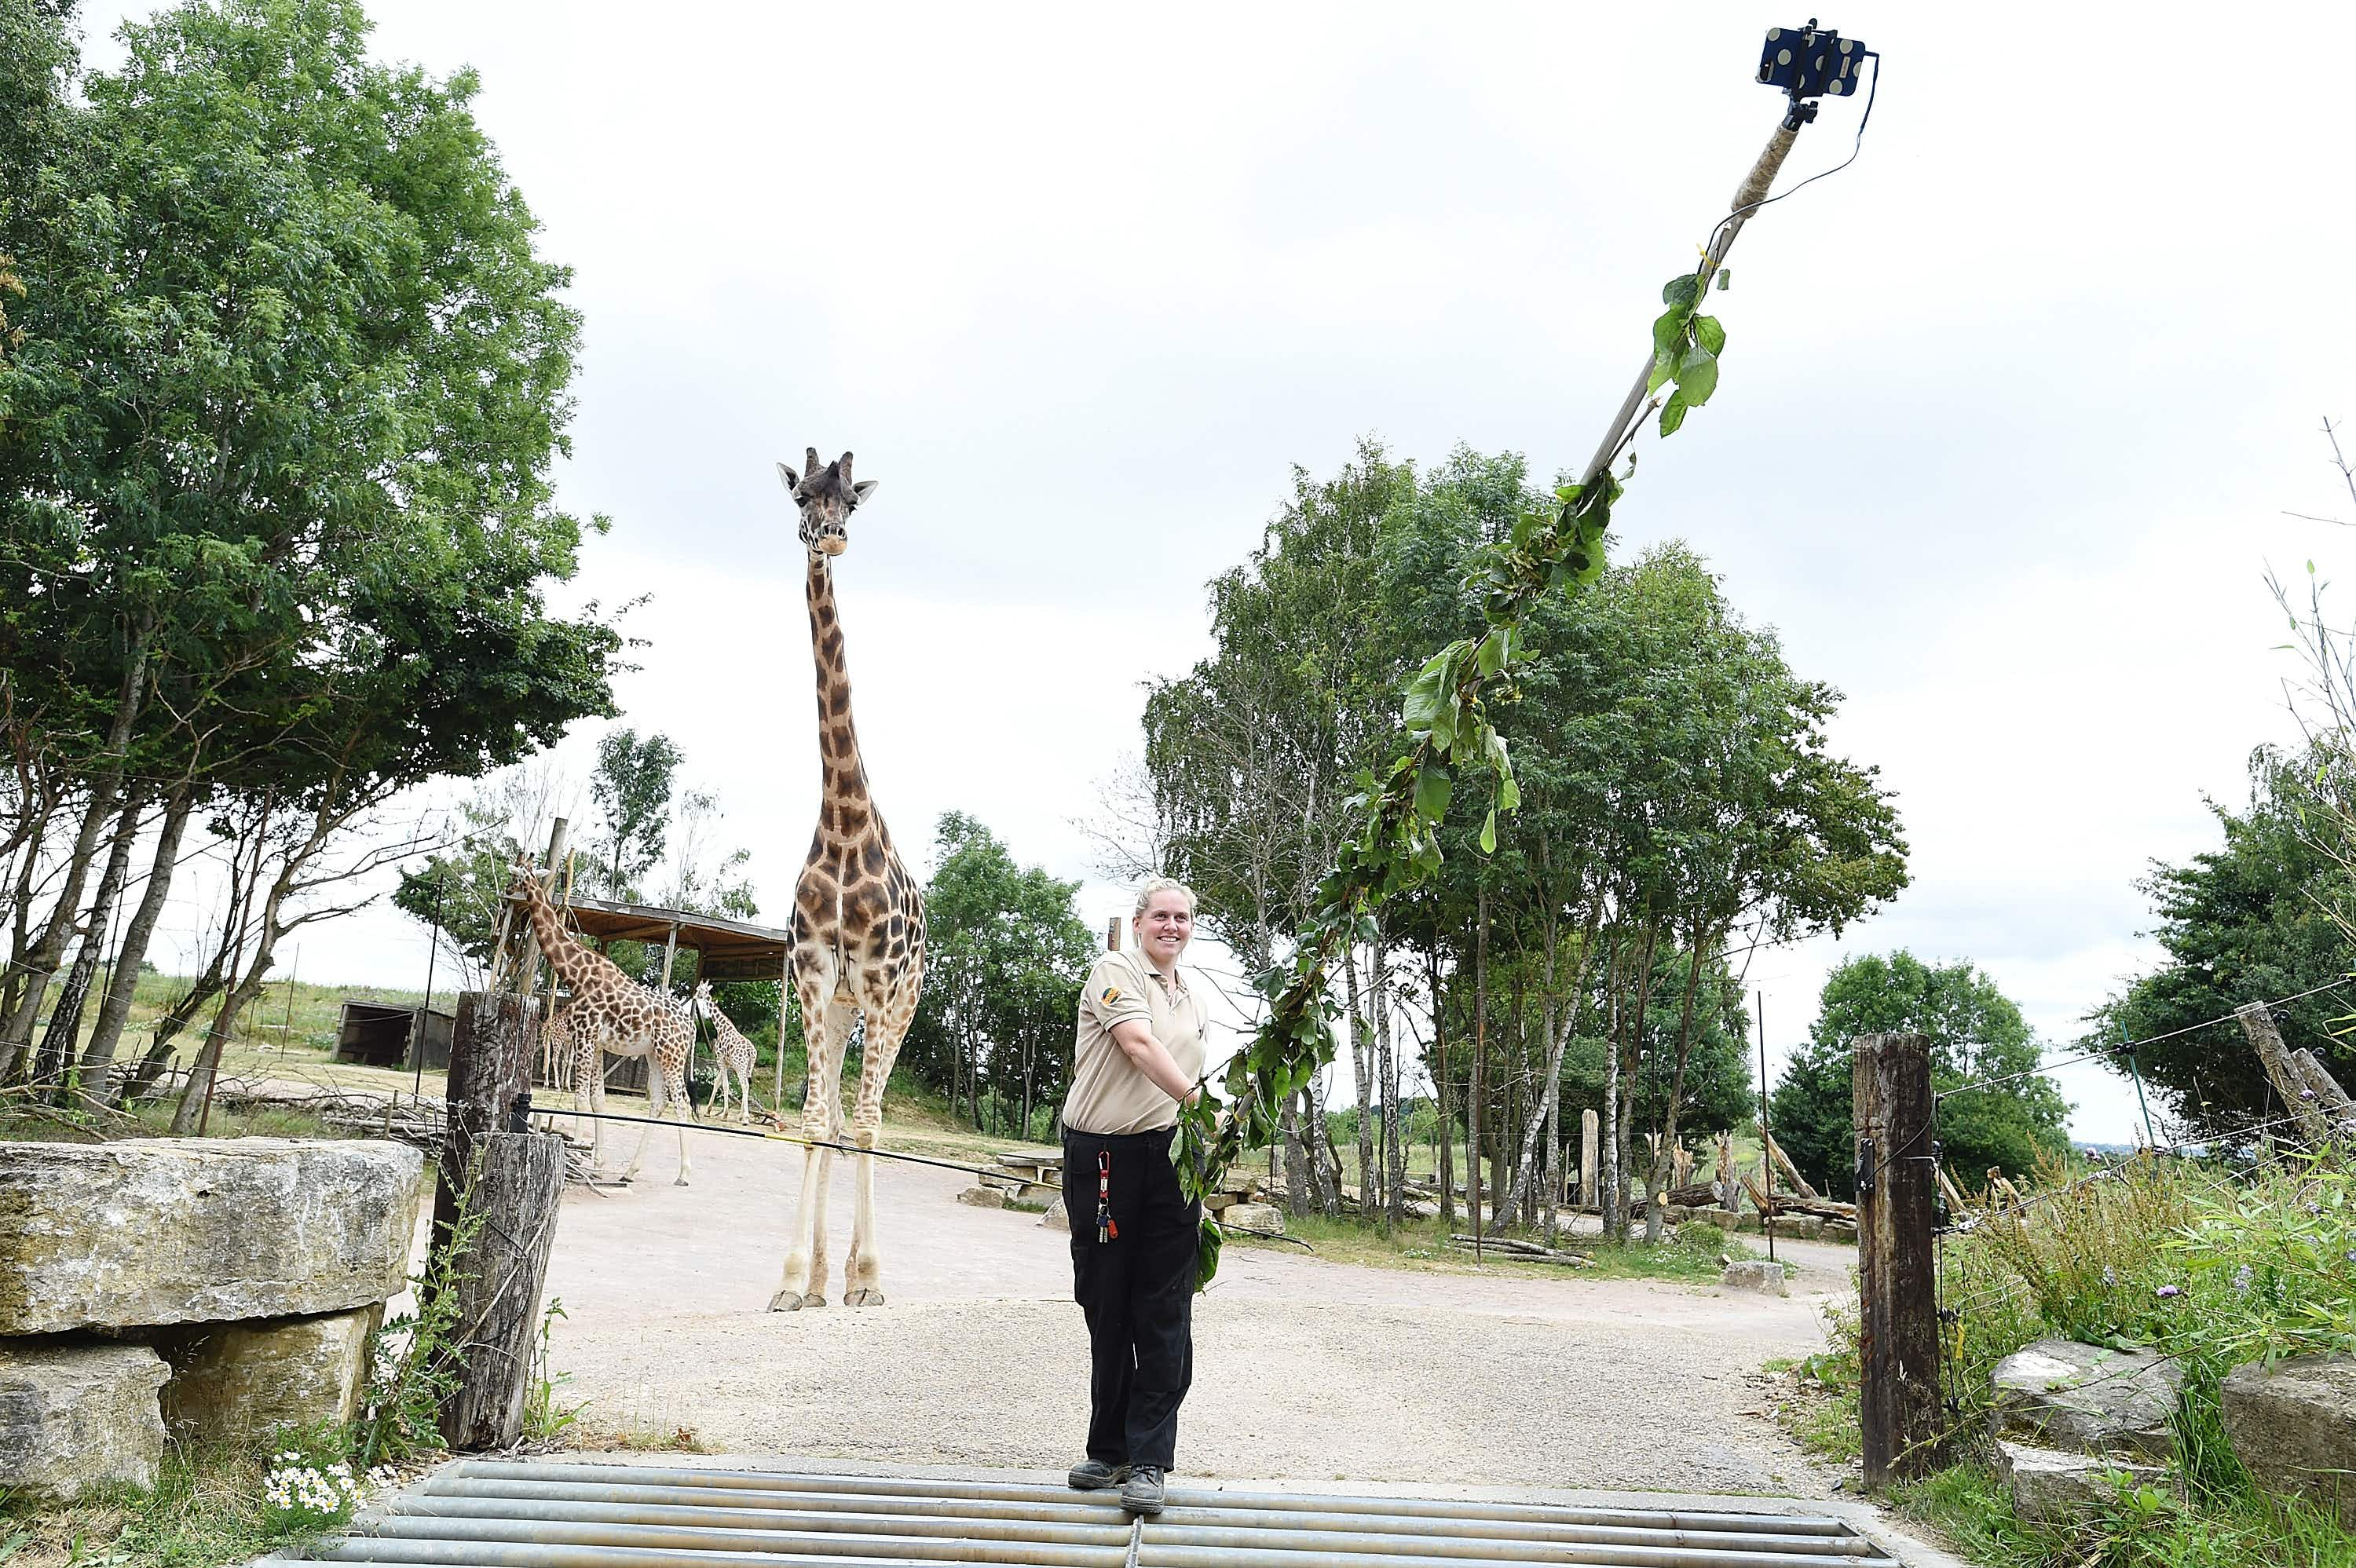 Zookeeper makes a 20ft selfie stick to let visitors snap themselves with giraffes